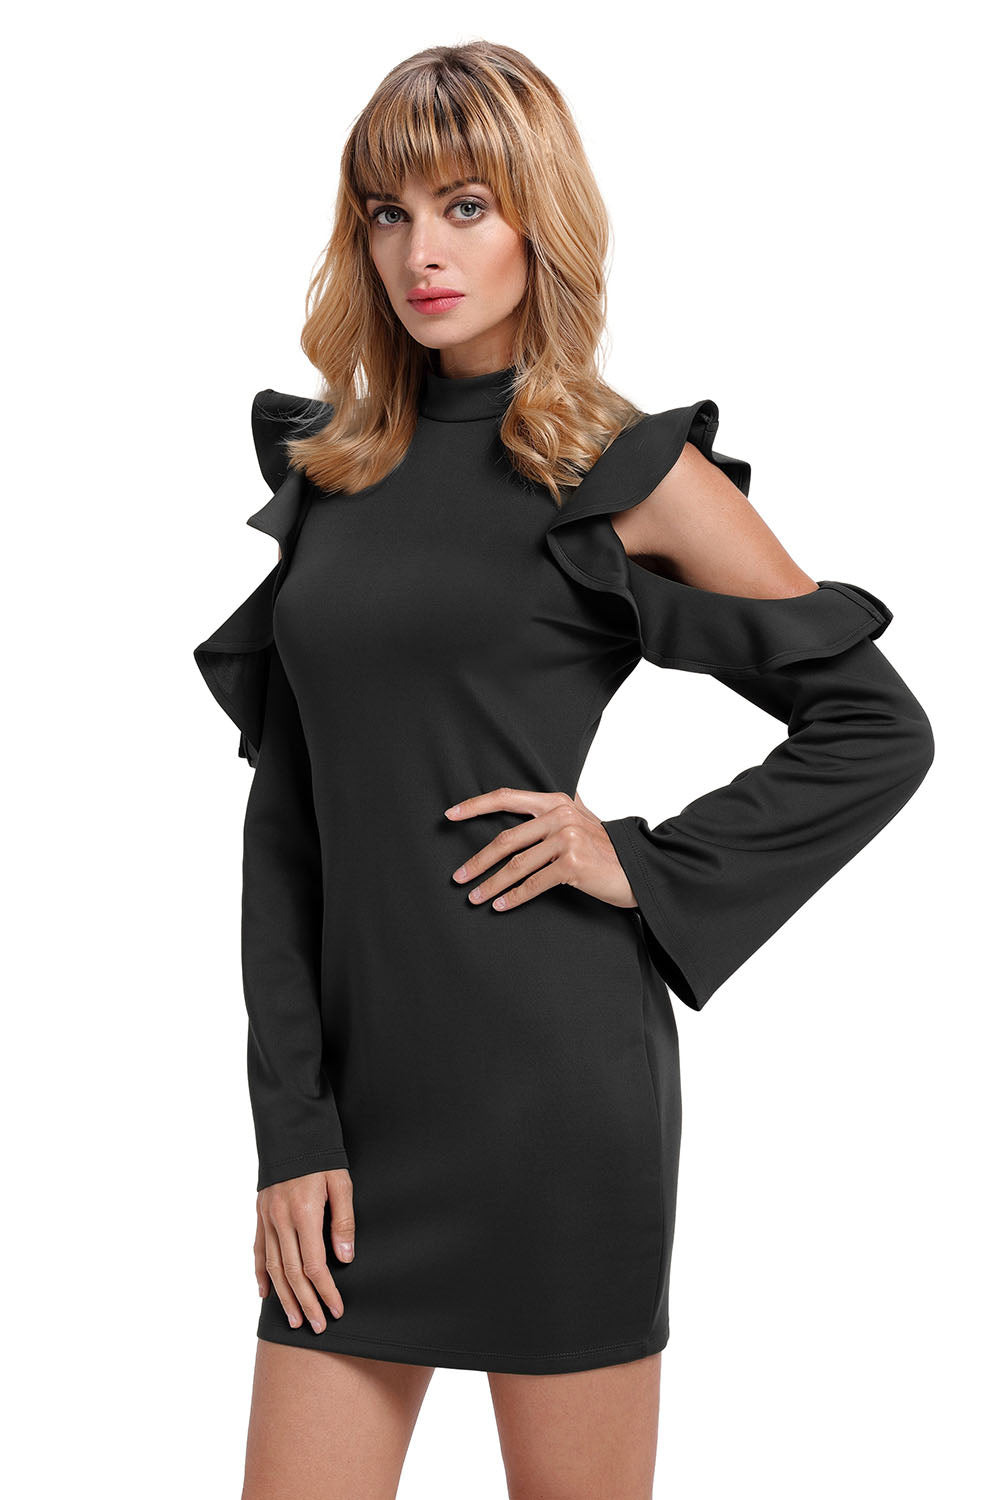 Her Fashion Black Cold Shoulder Ruffle Ultra Modern Bodycon Dress